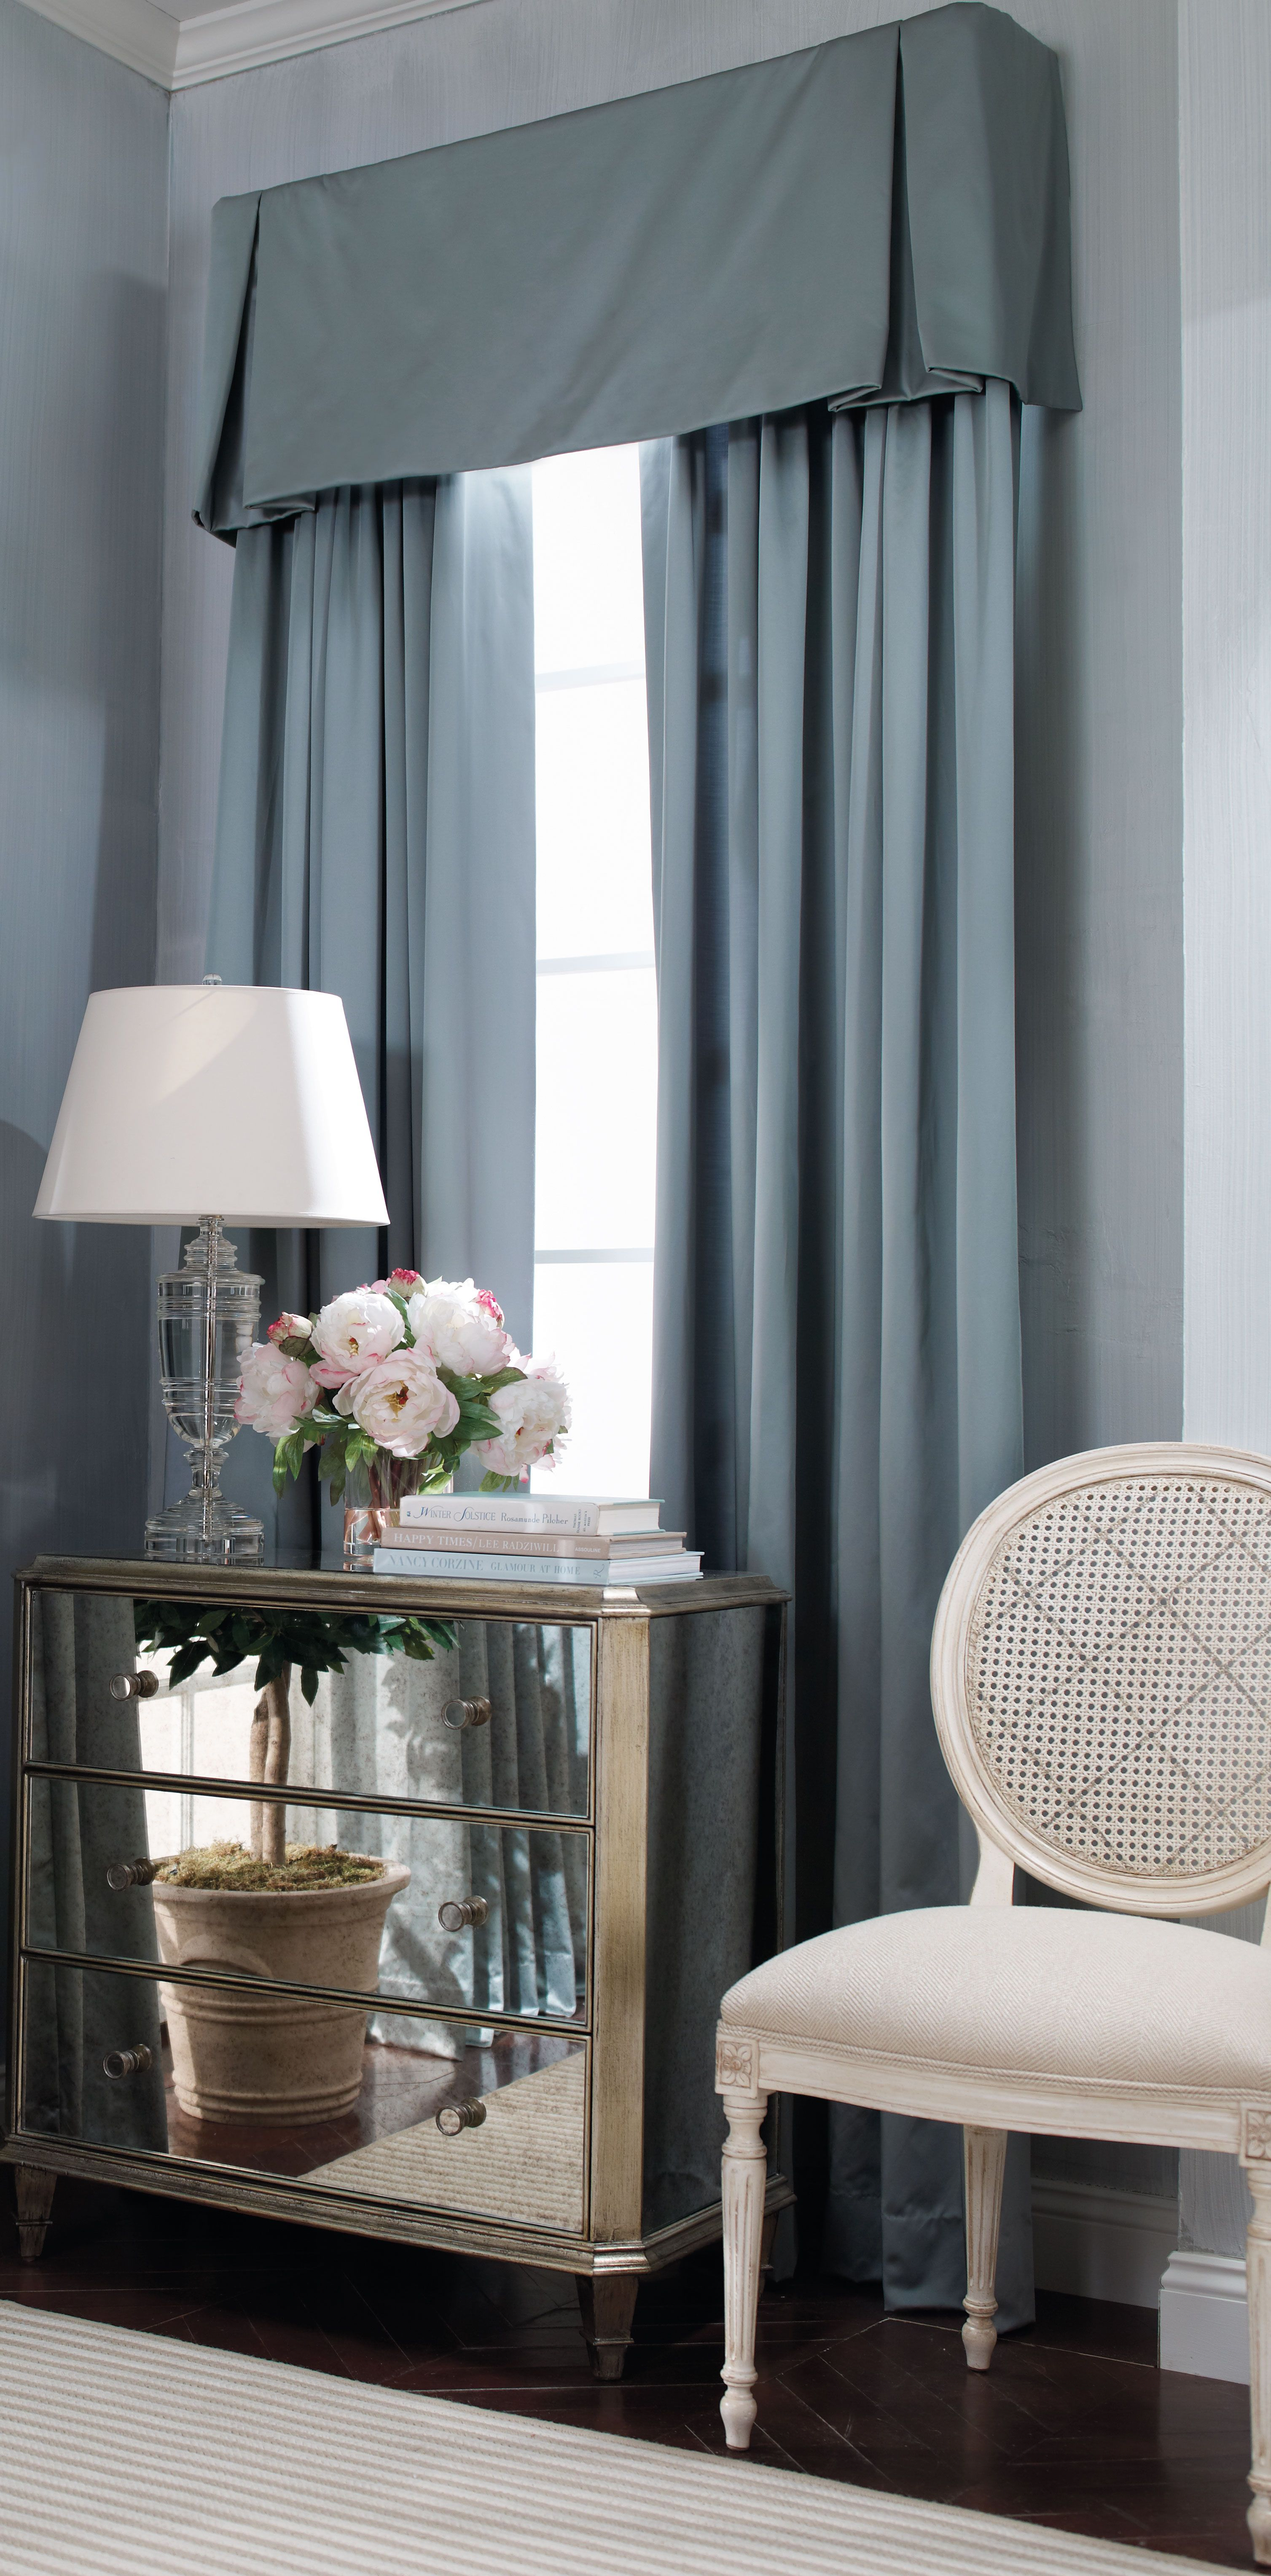 Window coverings ideas  this header is making haute headlines tip add a cleantailored